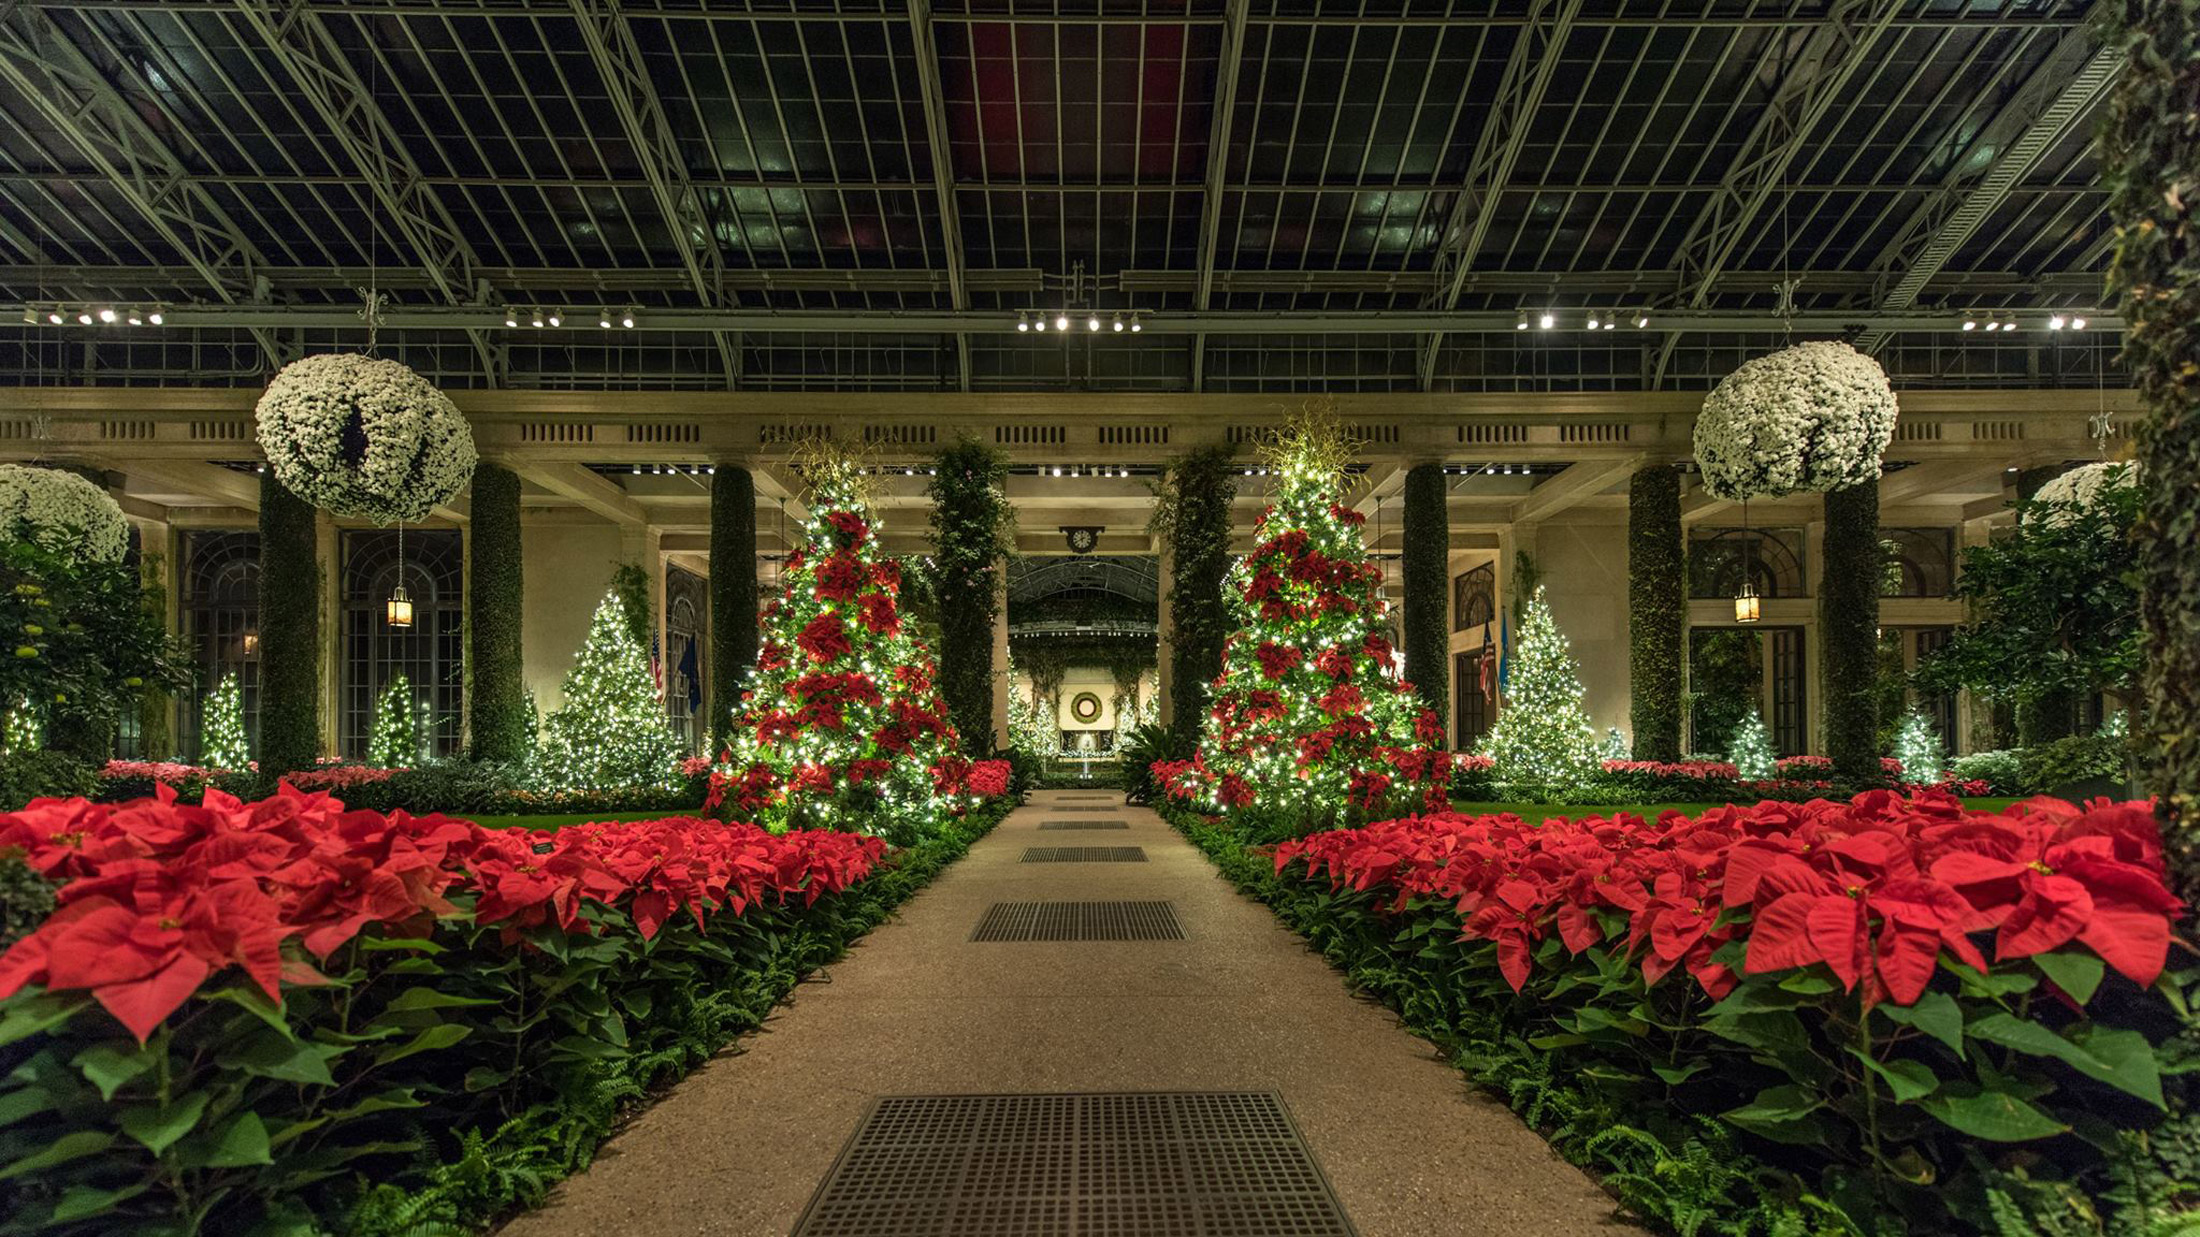 Longwood Gardens Christmas 2020 Prices A Longwood Christmas at Longwood Gardens — Visit Philadelphia